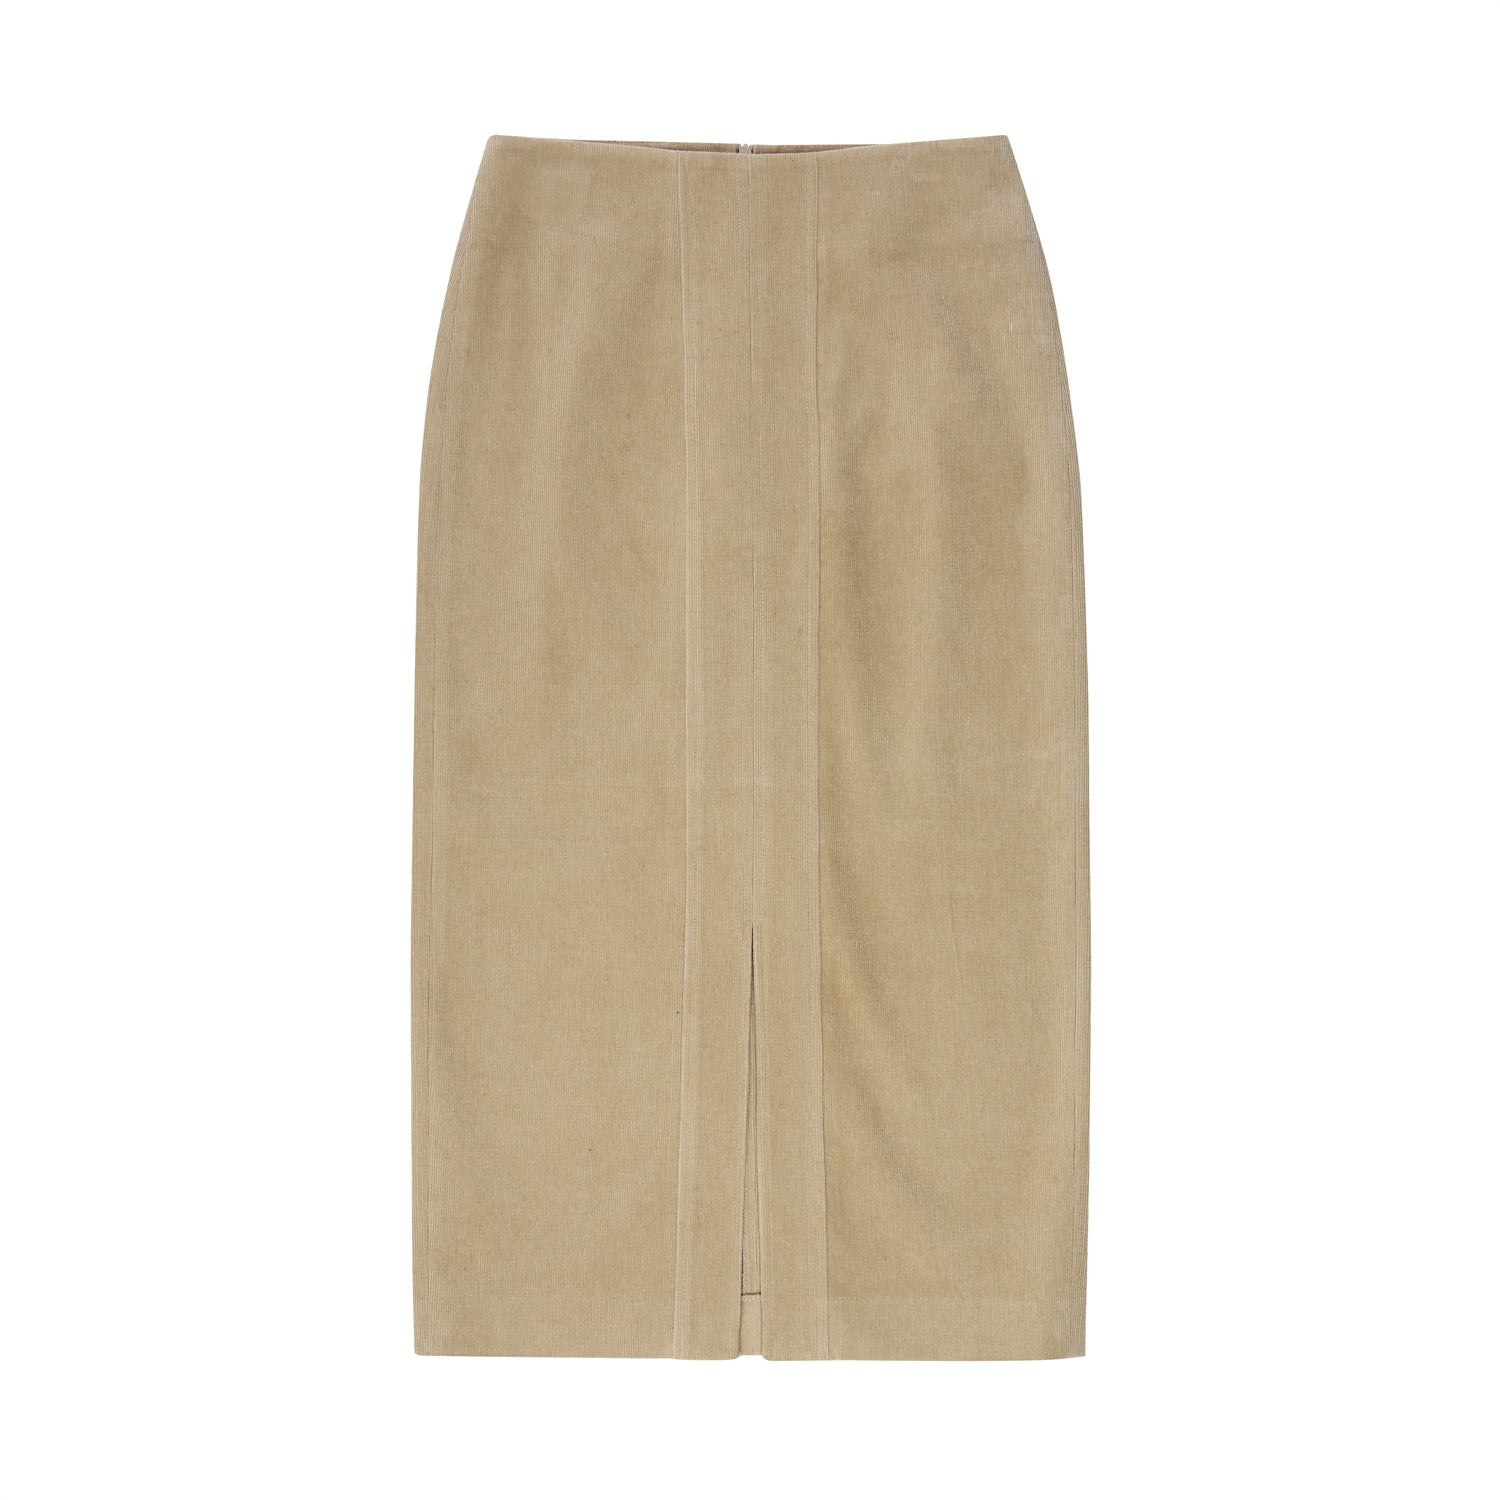 Corduroy pencil skirt - Beige